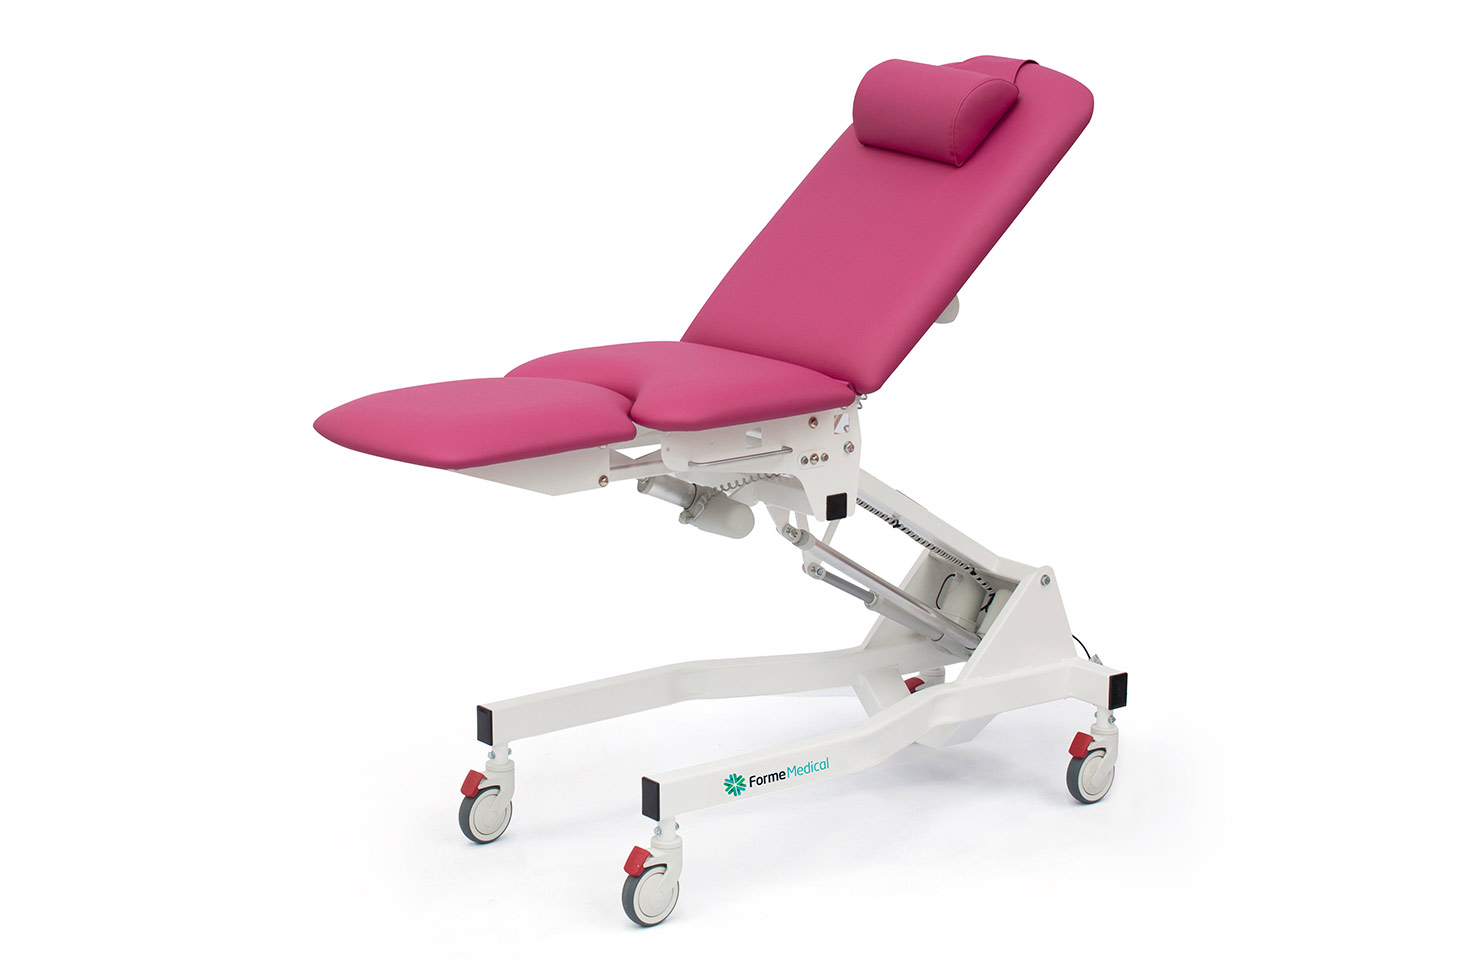 Examination Couch Amethyst for Gynaecology Ultrasound